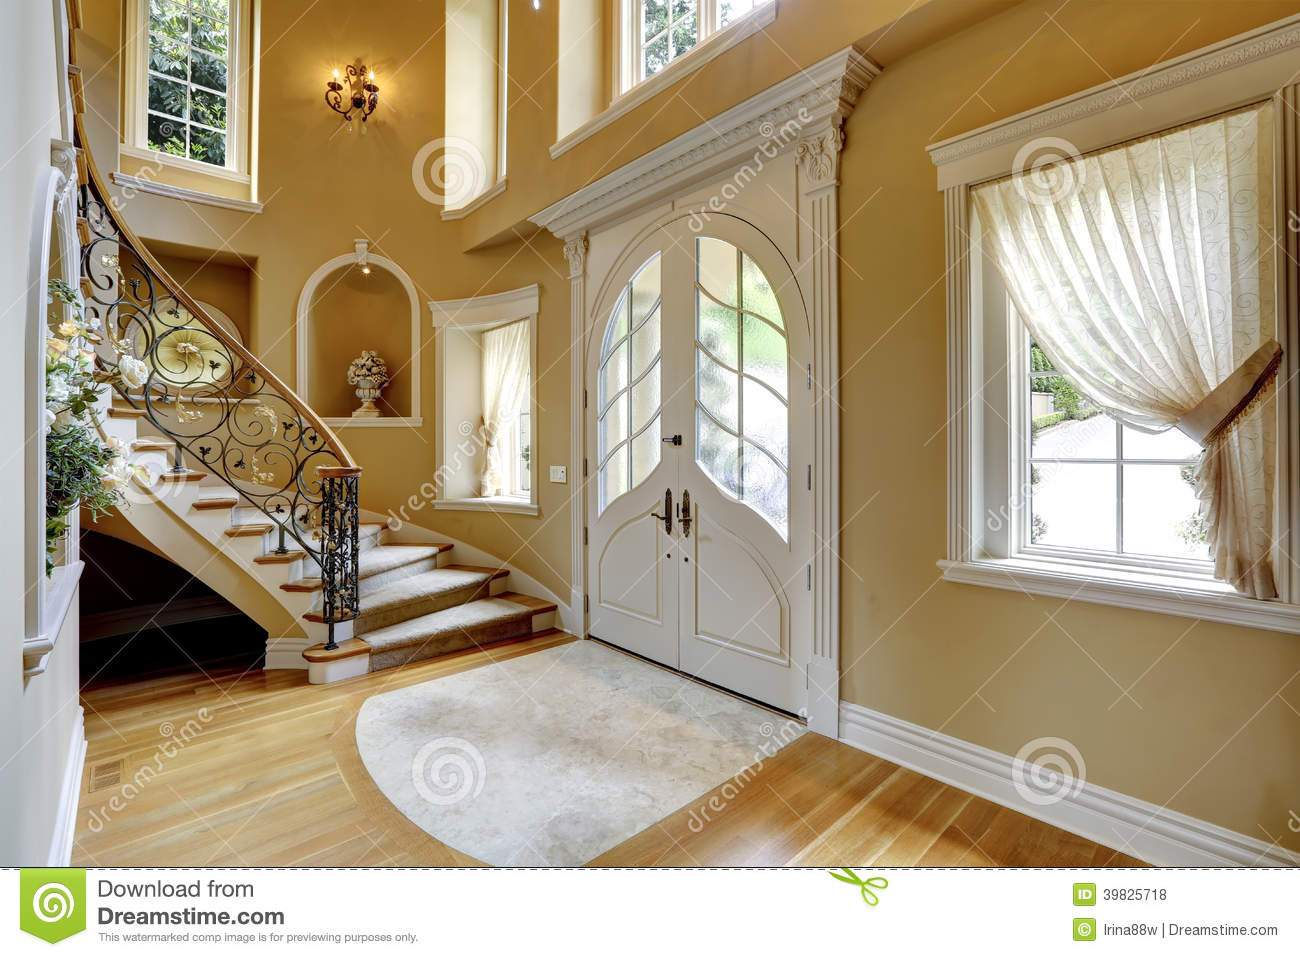 Beautiful Staircase Interior House Interior Entrance Hallway Beautiful High Ceiling Hall Staircase